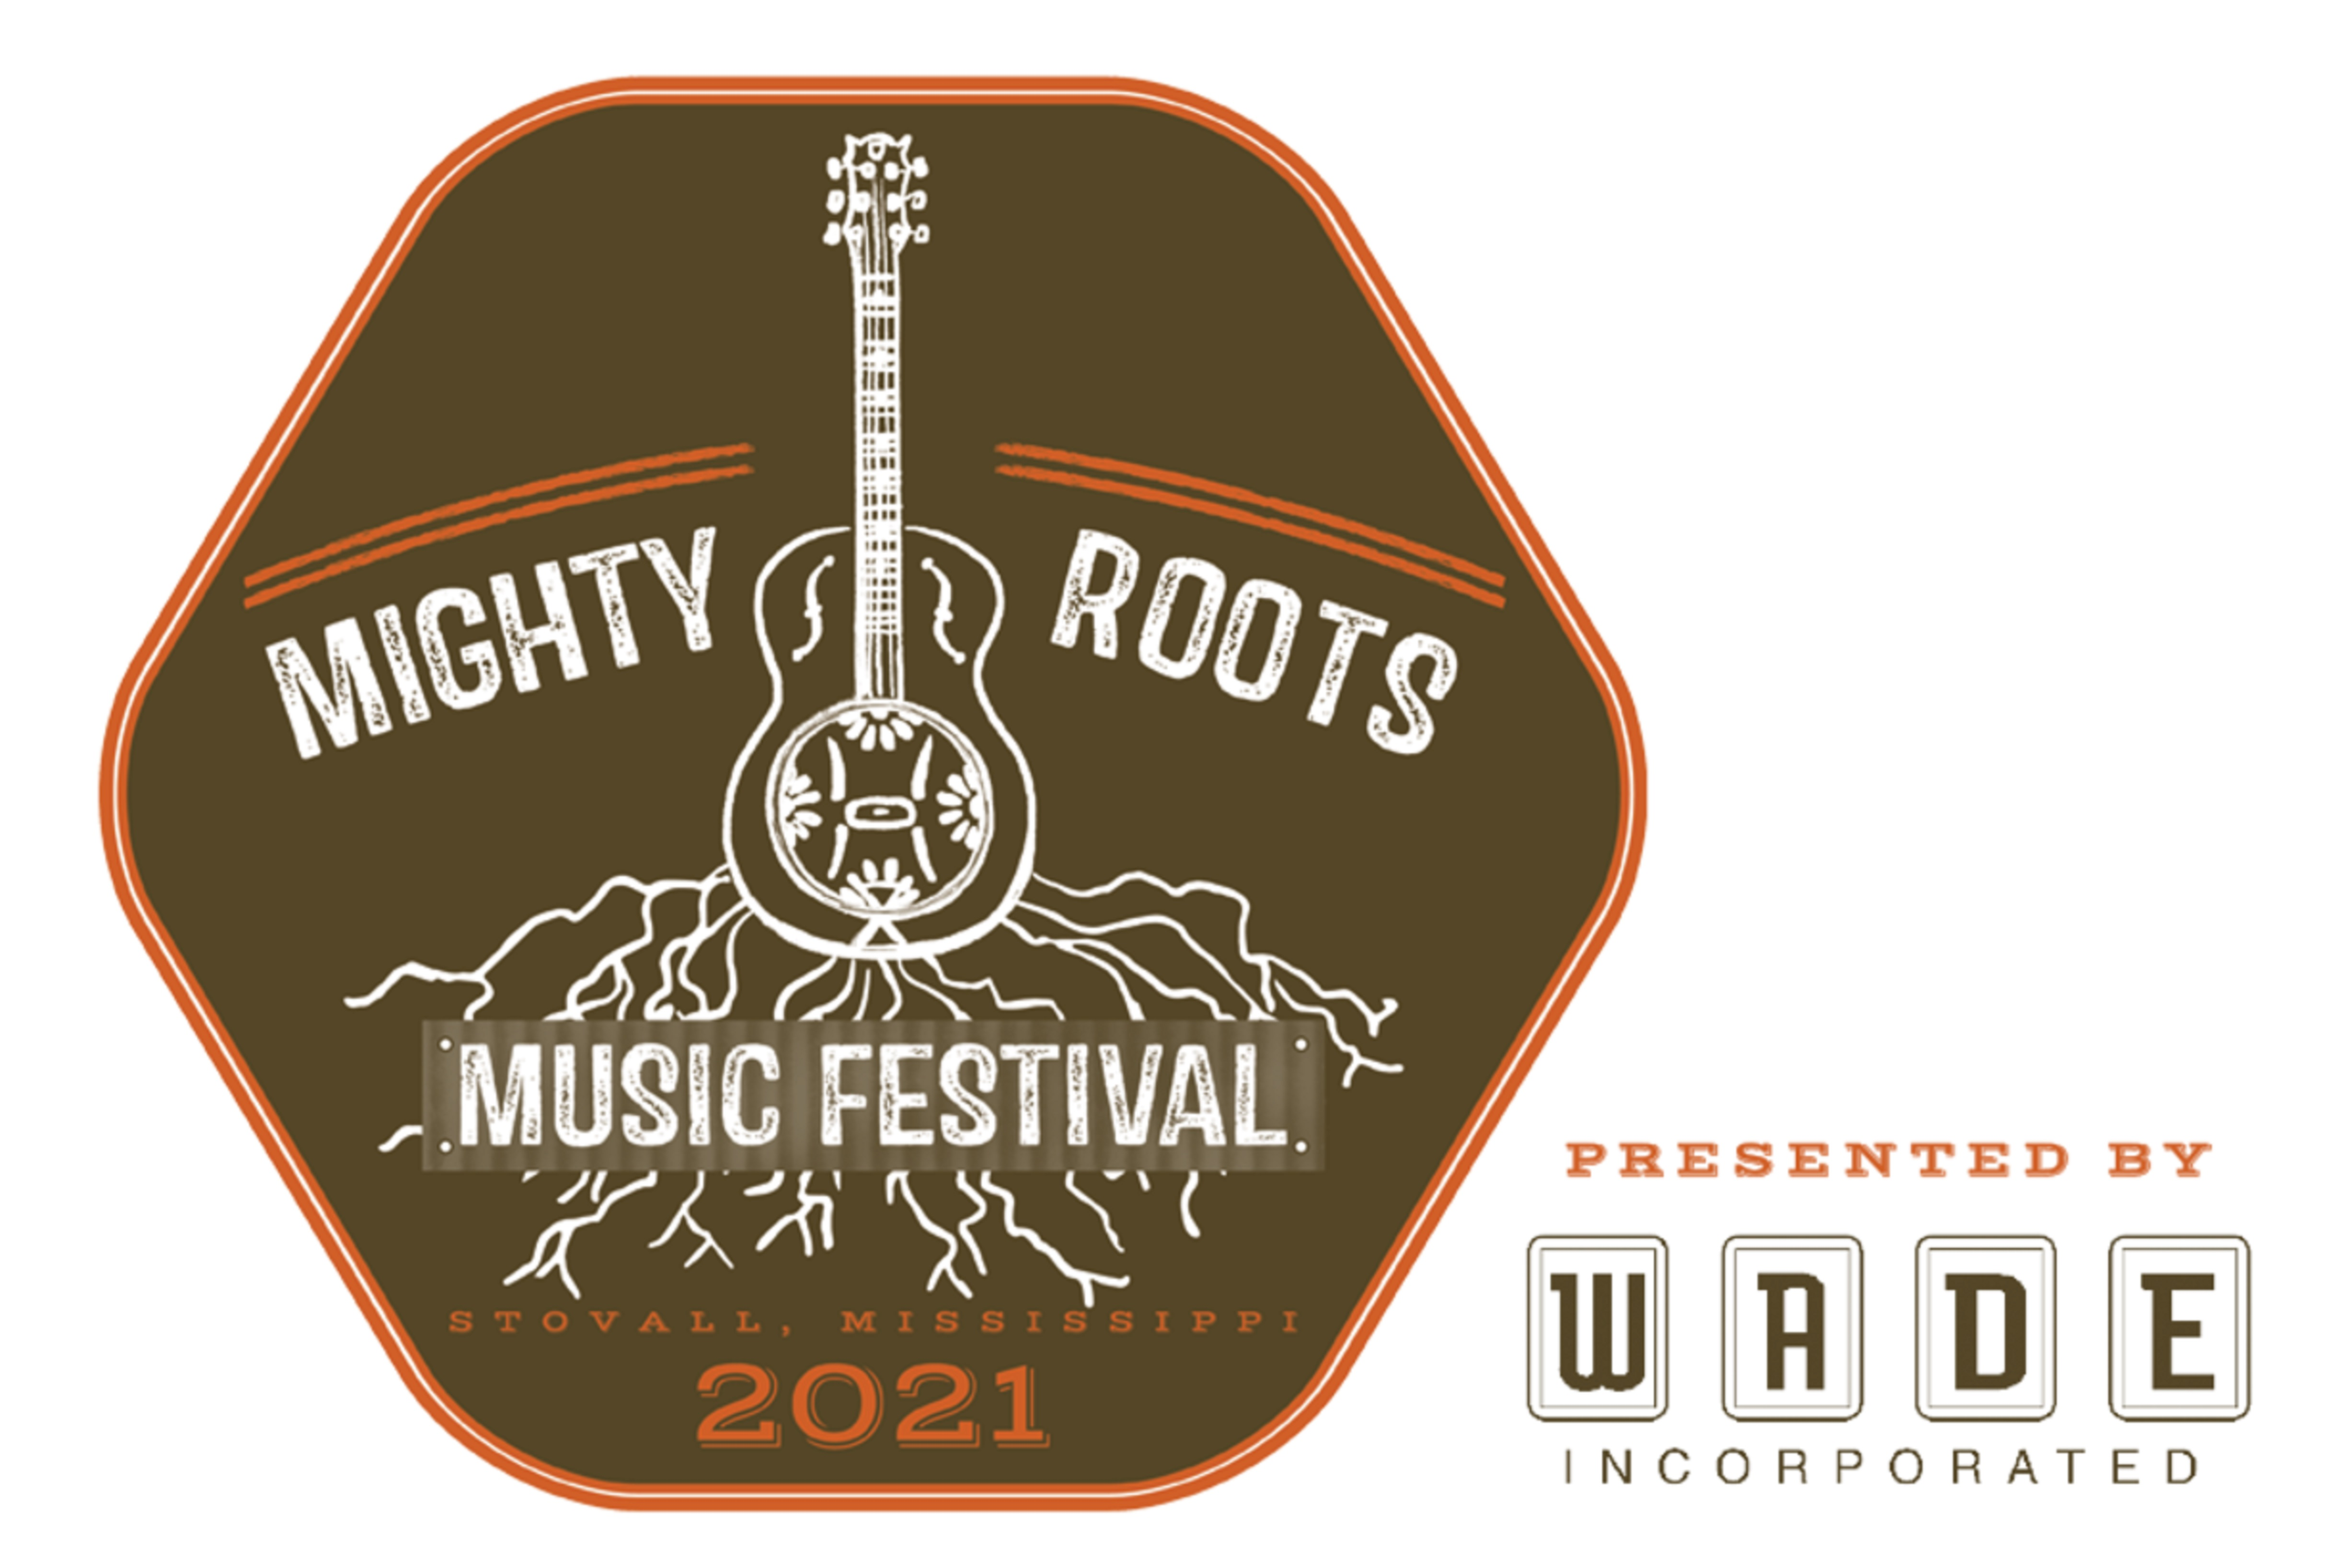 Mighty Roots Festival in Mississippi Delta announces lineup, on historic home site of Muddy Waters